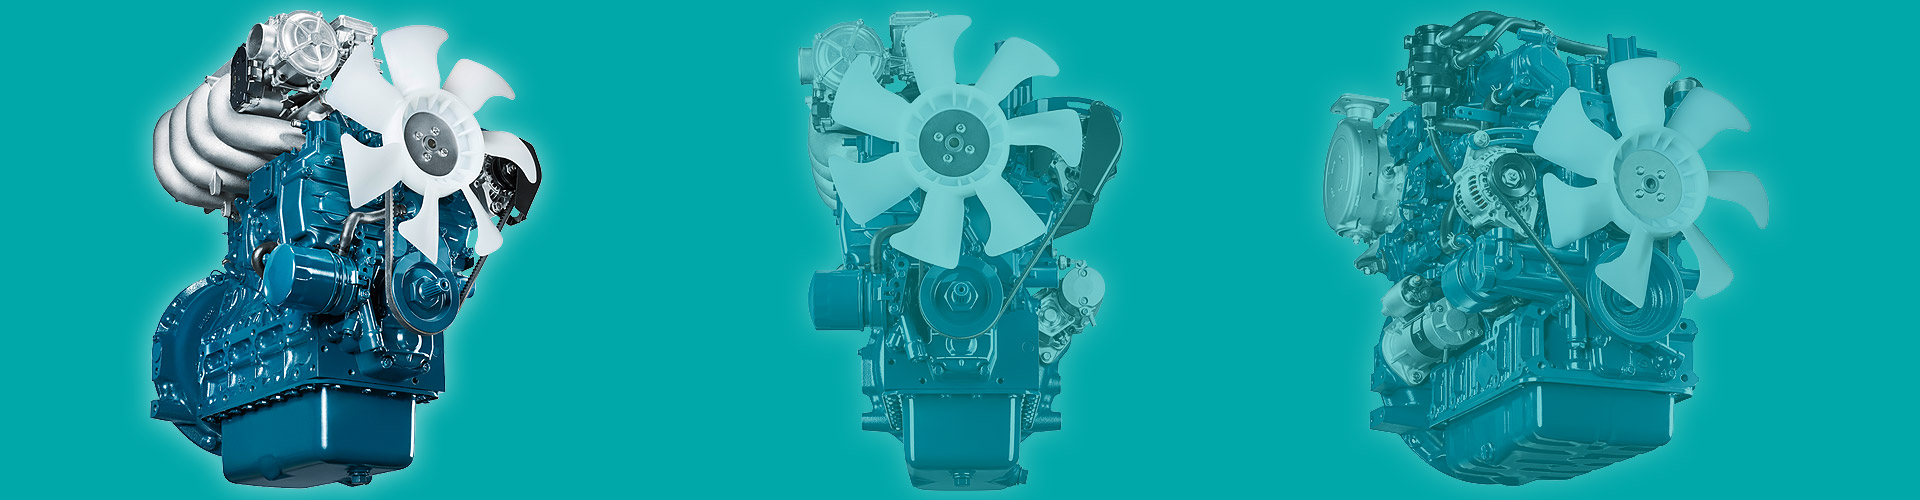 DIESEL ENGINES FOR GENERATORS